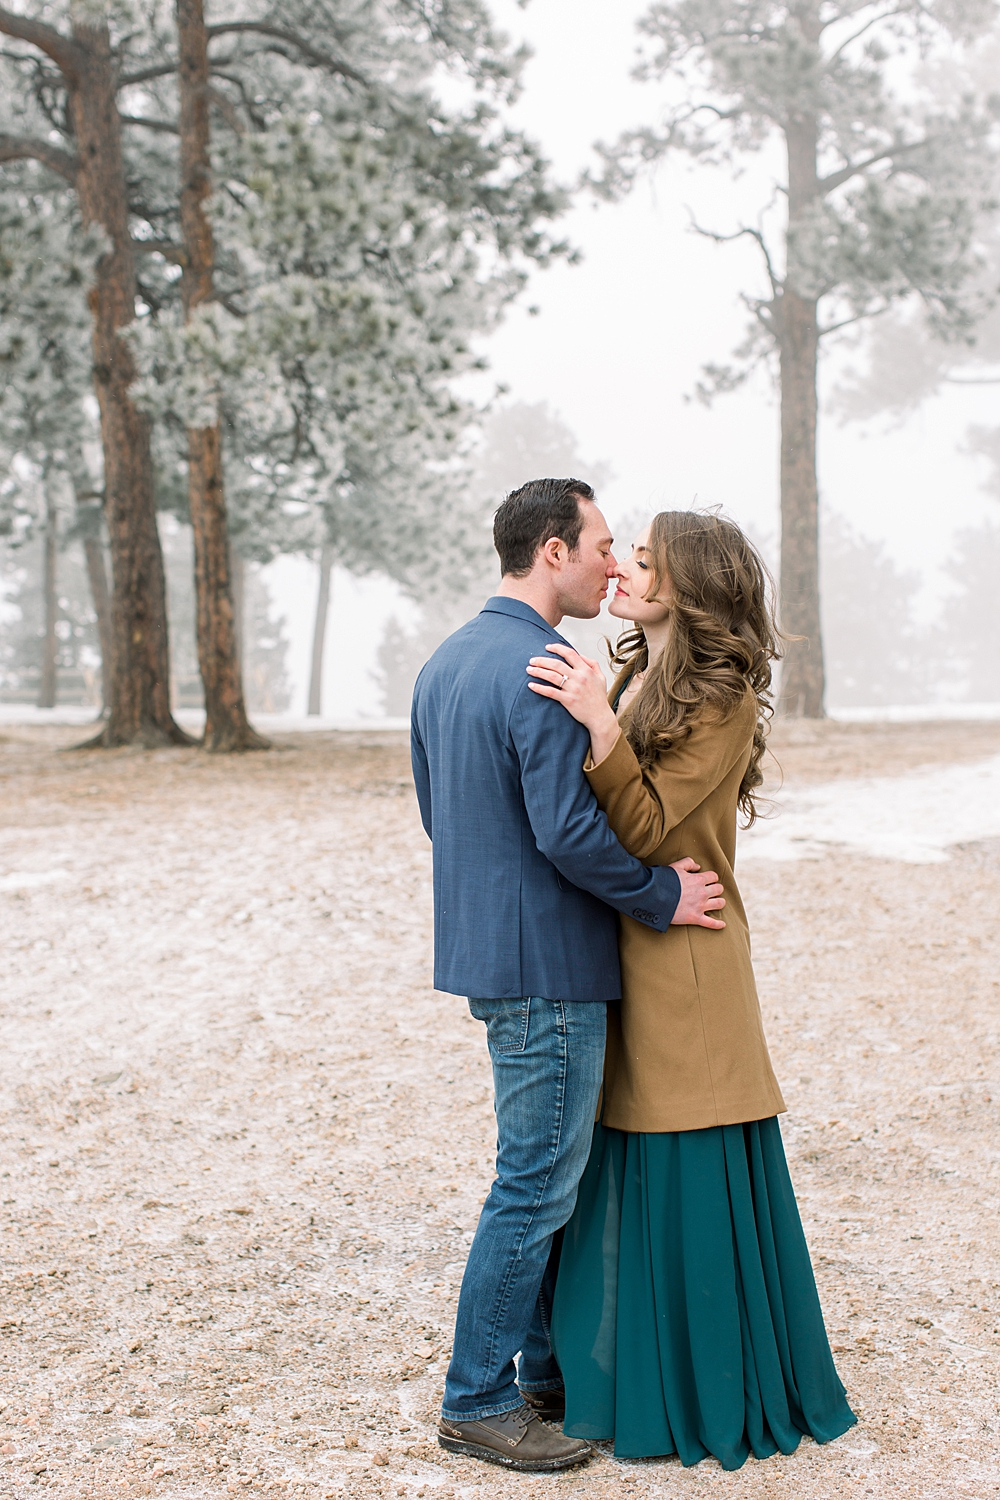 Michele with one L Colorado Mountain Engagement Photographer_0987.jpg